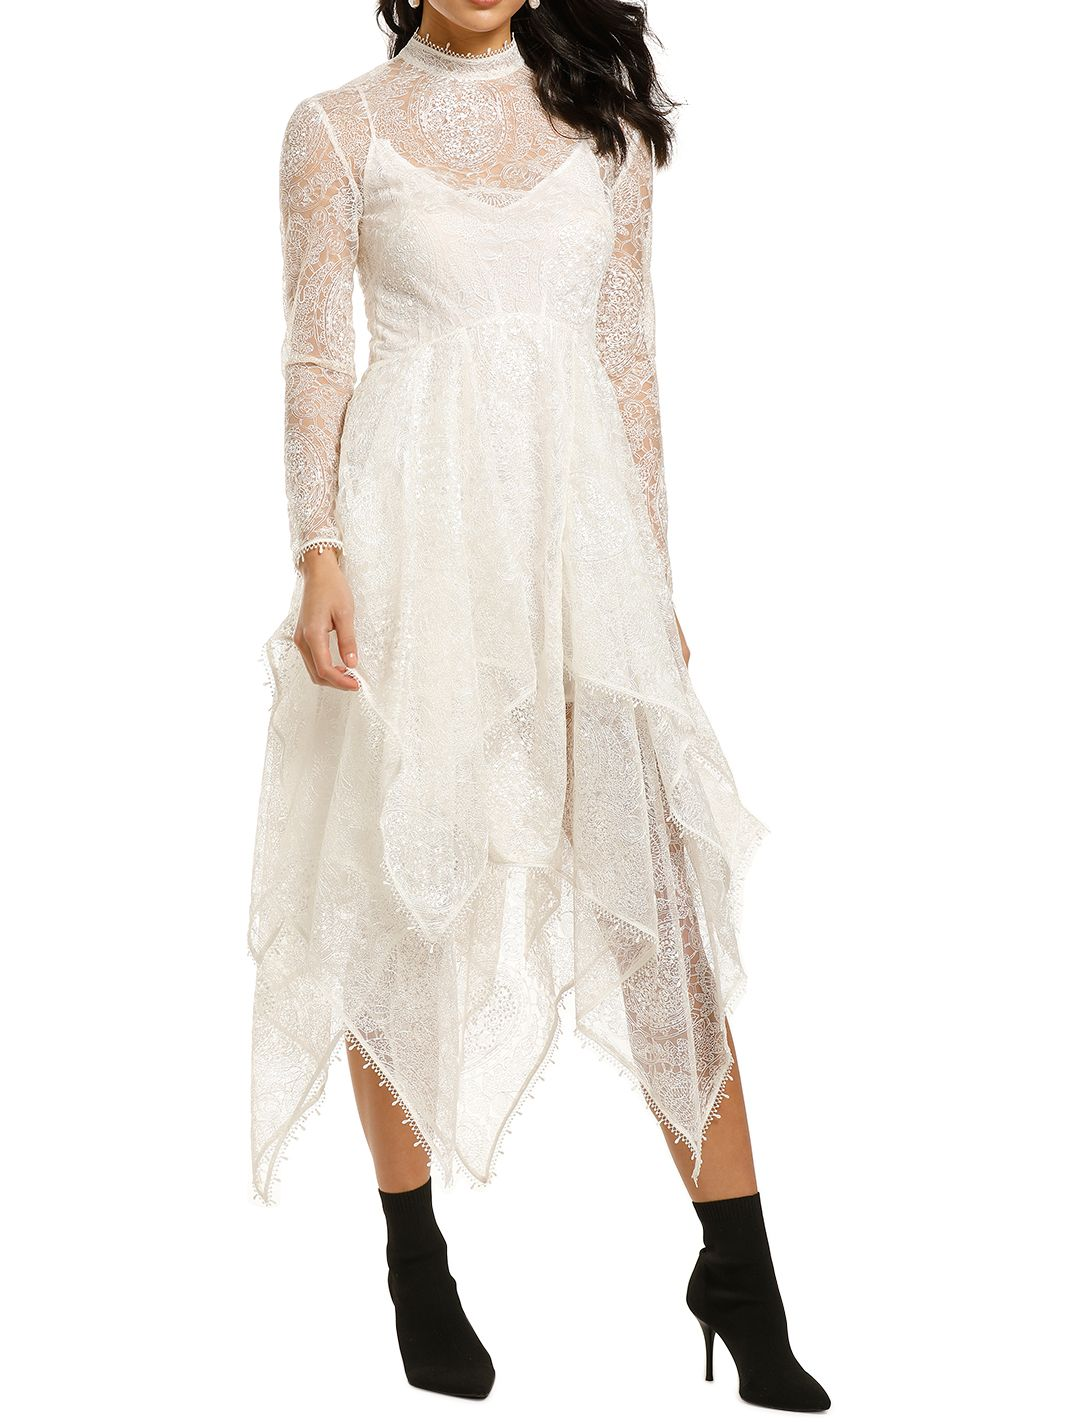 Leo-and-Lin-Serenity-Lace-Handkerchief-Dress-White-Front